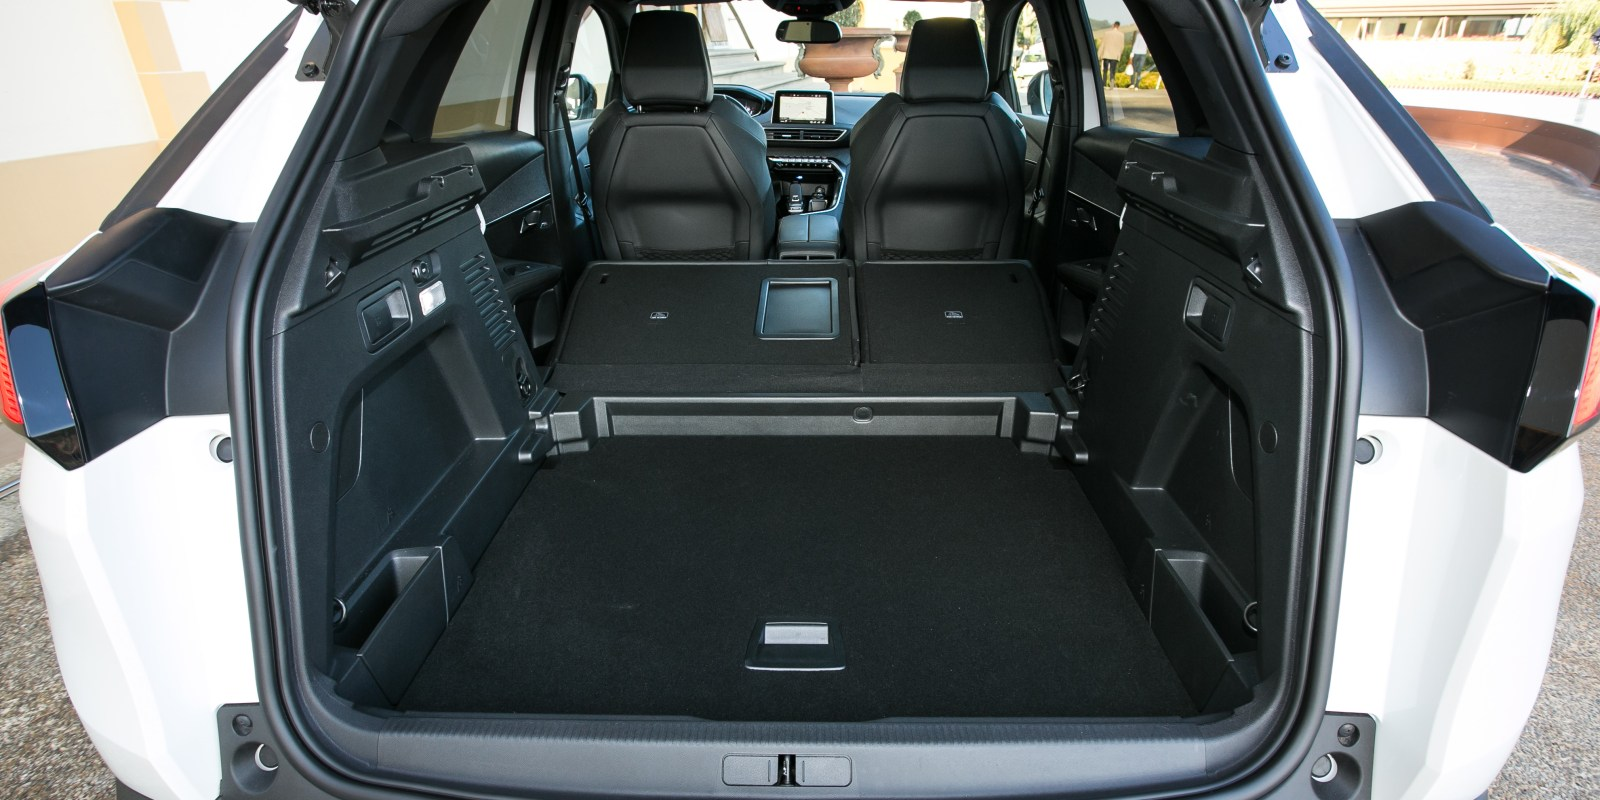 3008 Interieur Peugeot 3008 Review Carwow